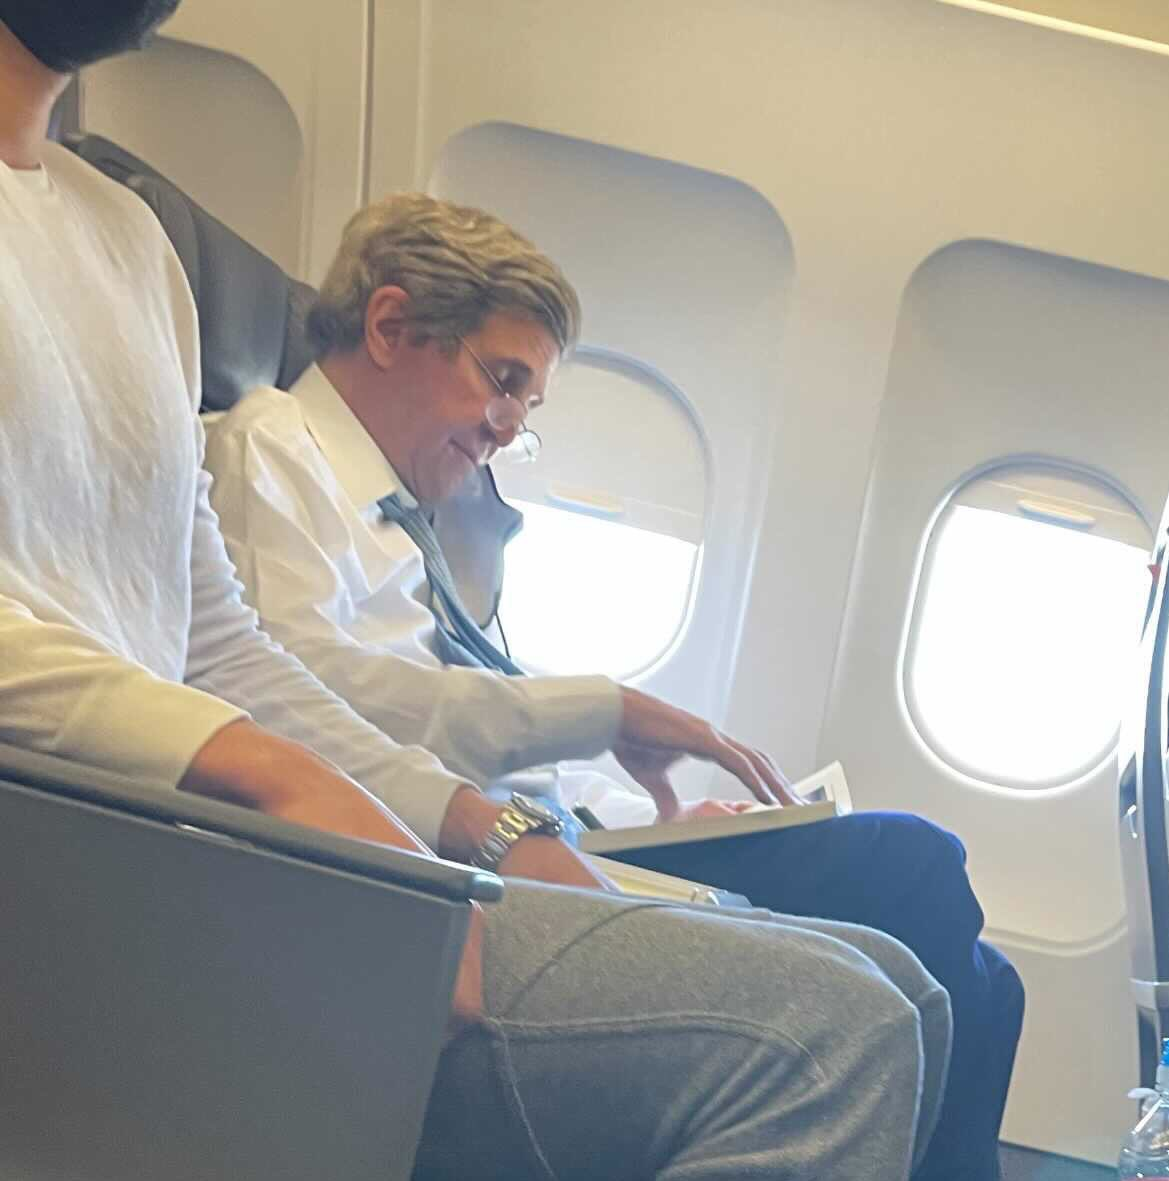 john kerry no mask american flight